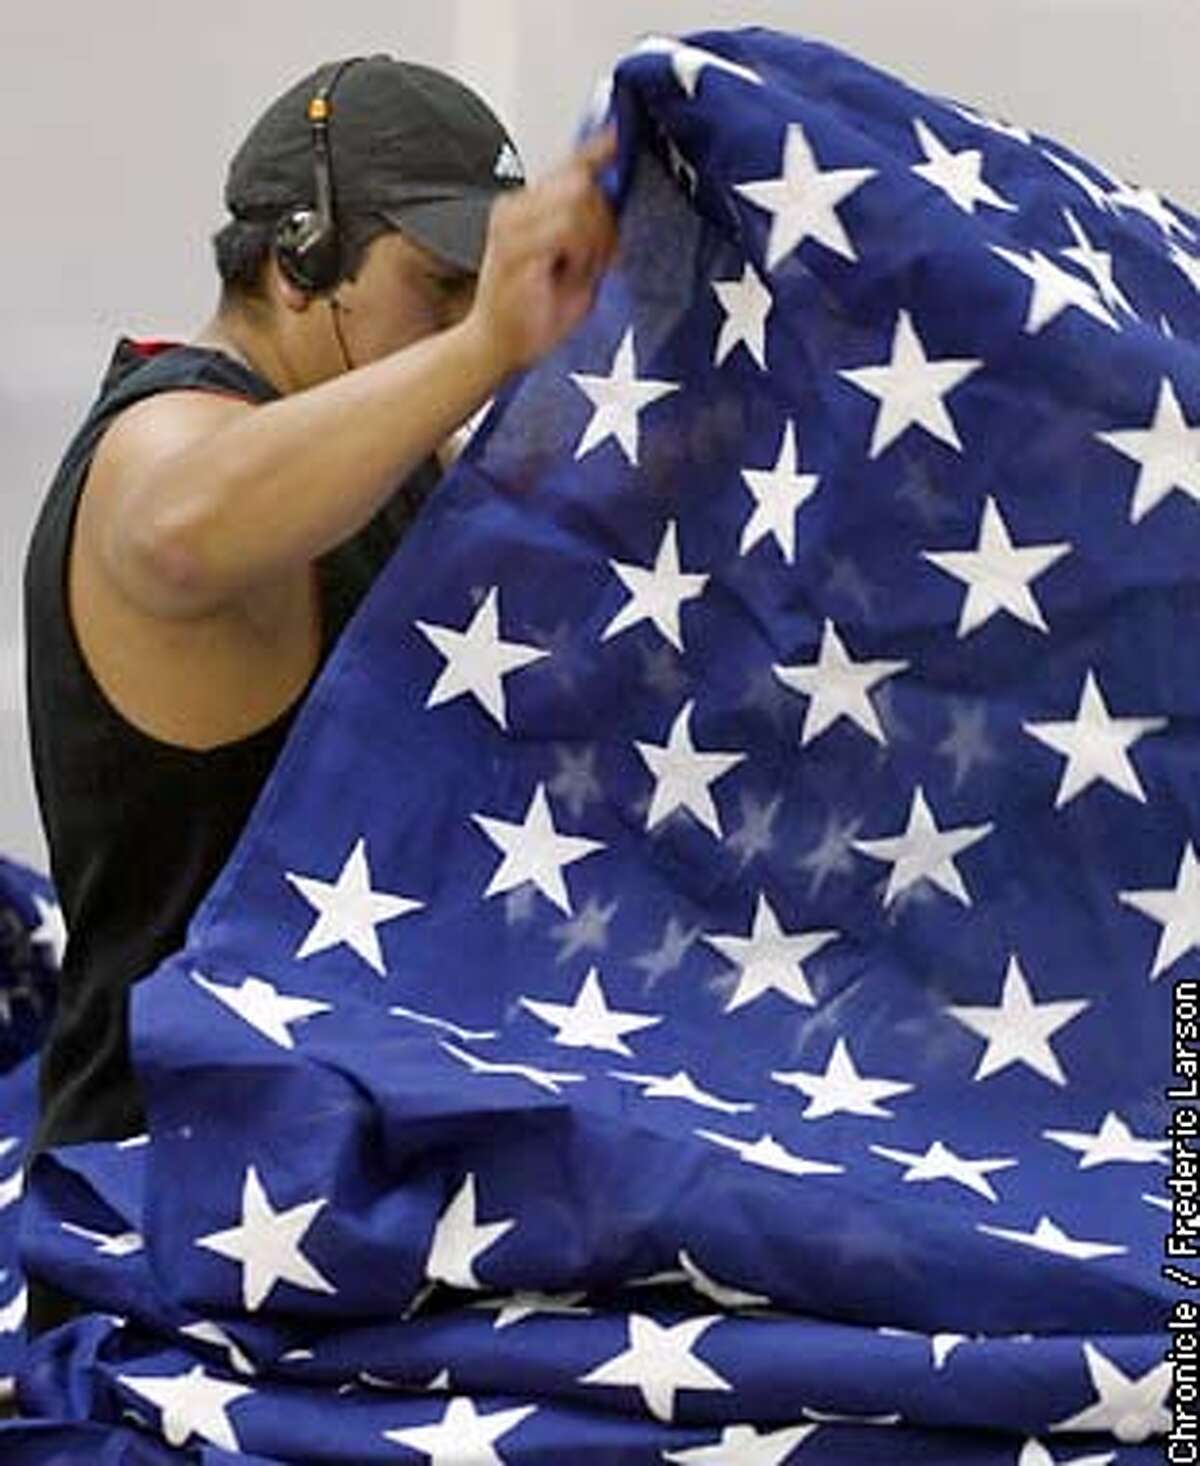 : Jose Olguin works for North Bay Industries in Rohnert Park which is a industries that is a maker of U.S. flags in the Bay Area which they specializes in flags that are used for caskets. Chronicle photo by Frederic Larson